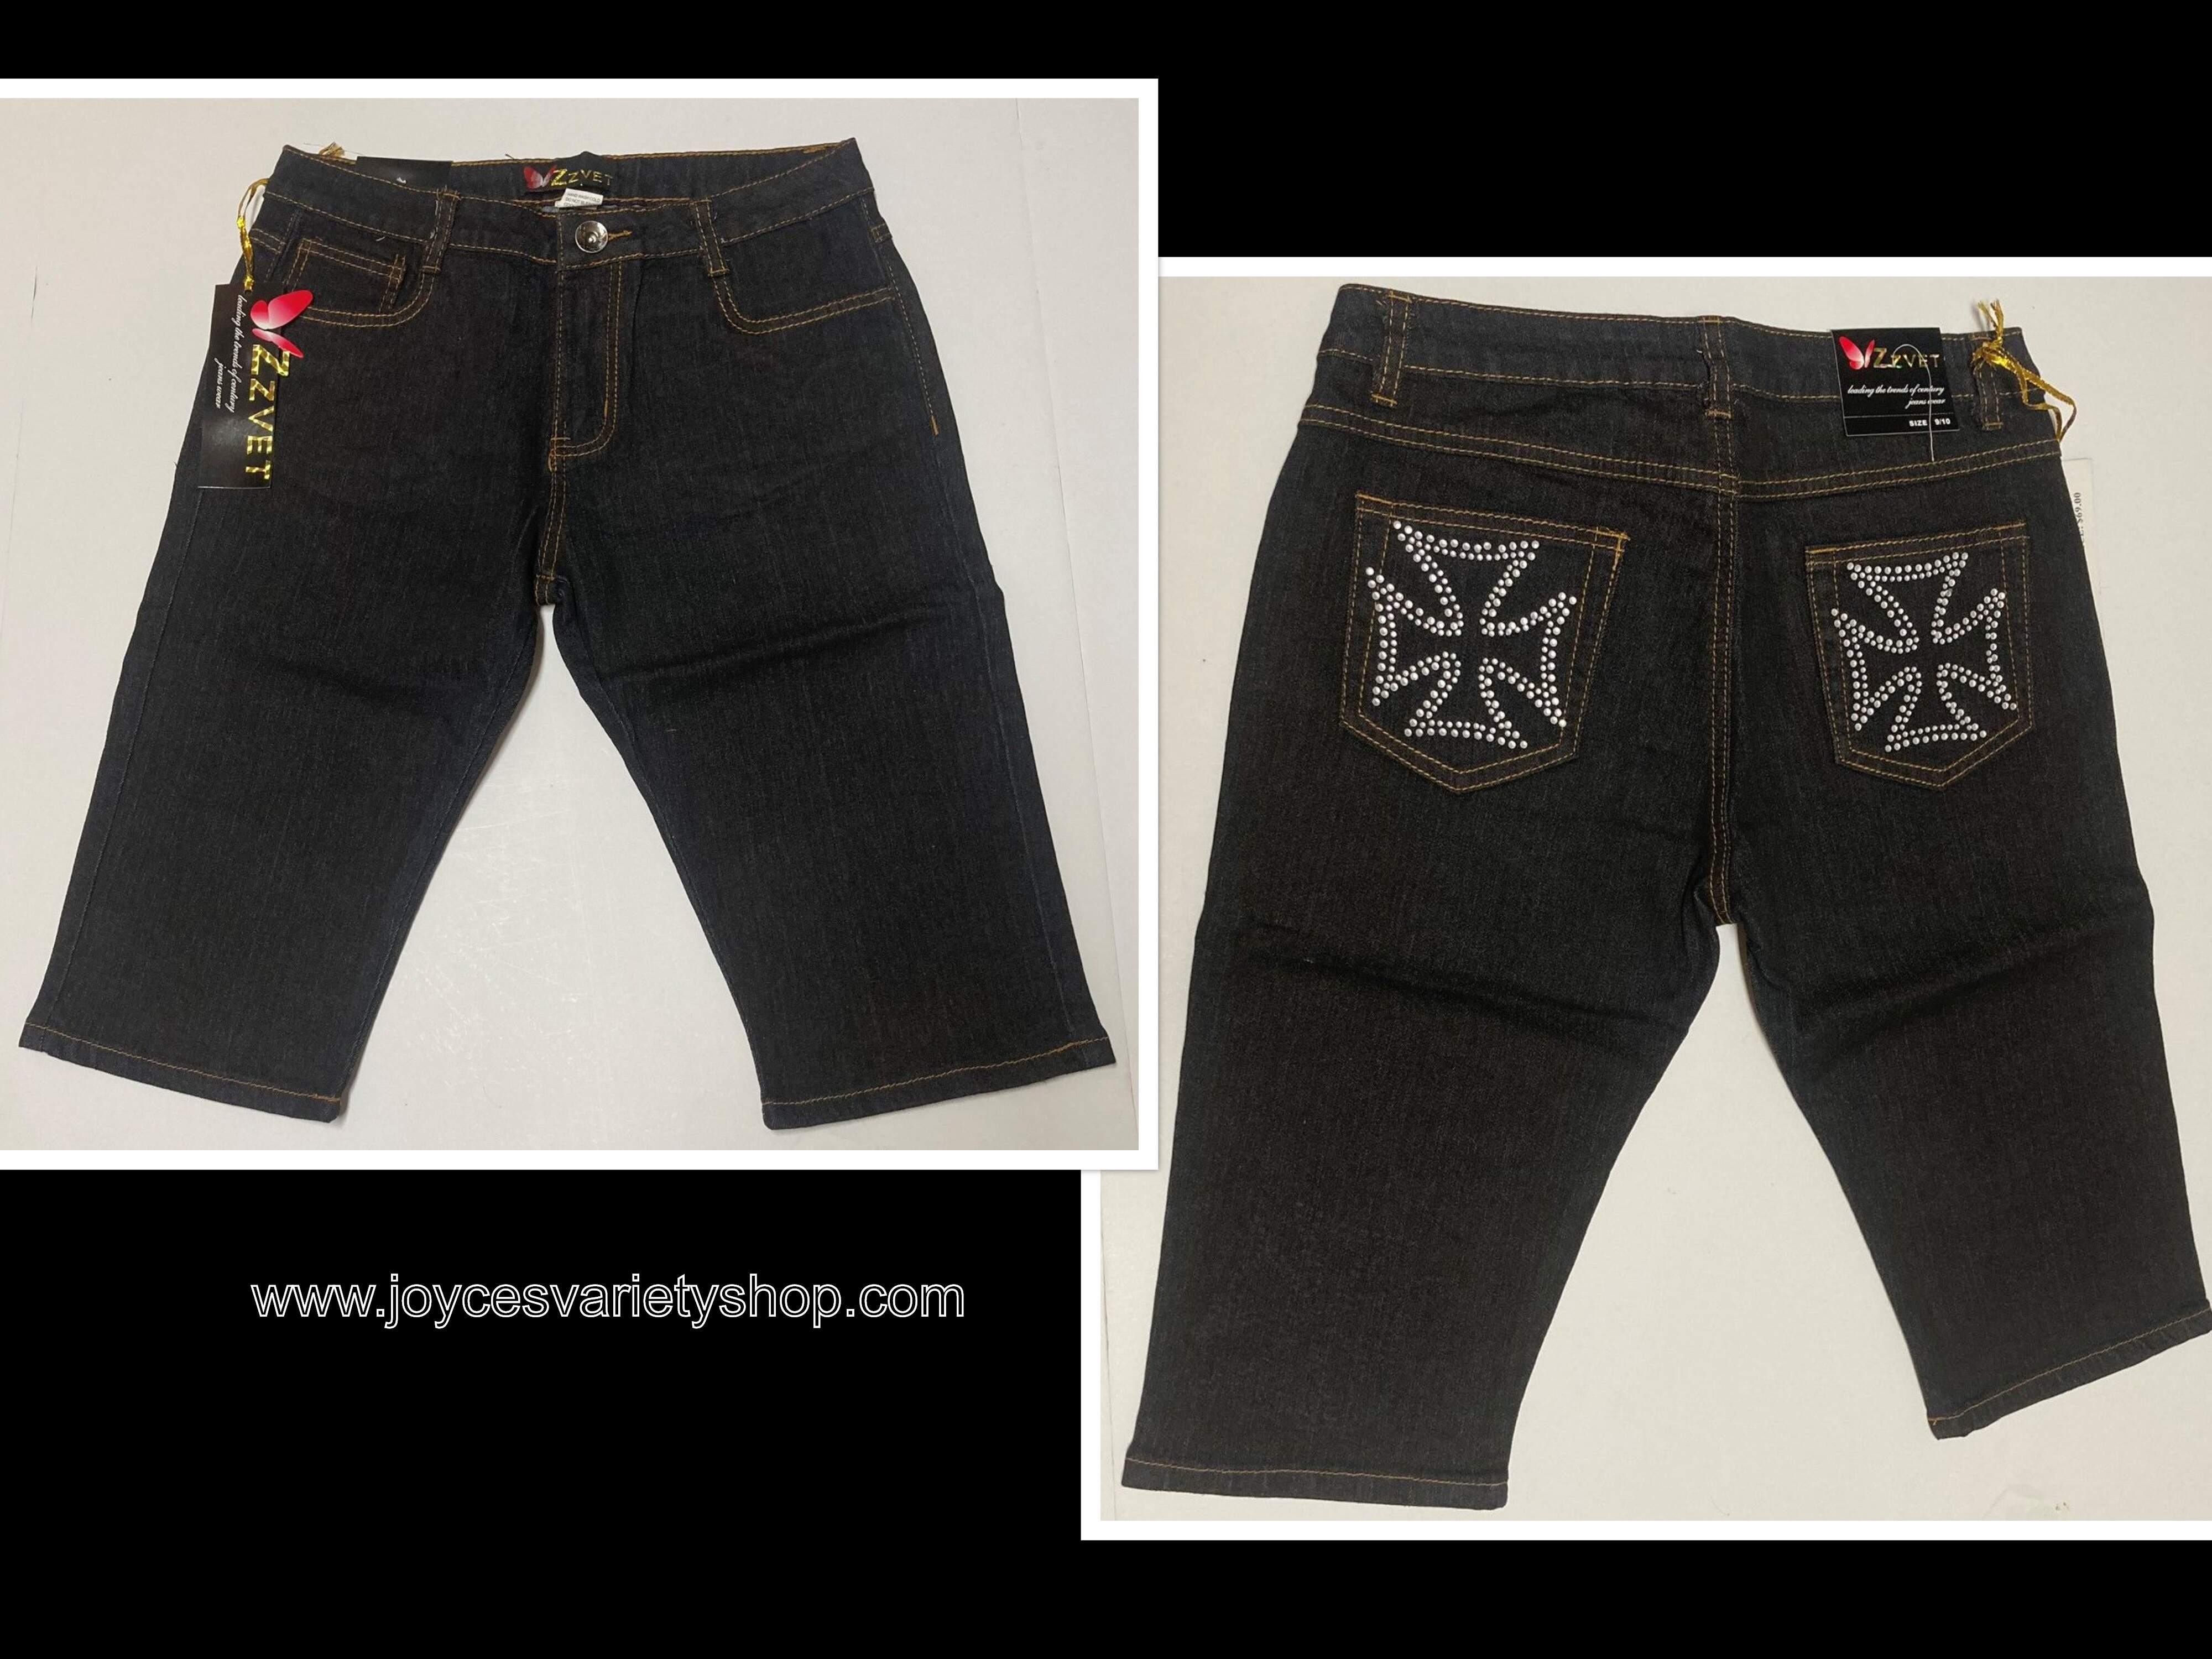 ZZVET Black Jean Shorts Indigo Stretch Iron Cross Design Juniors Various Sizes